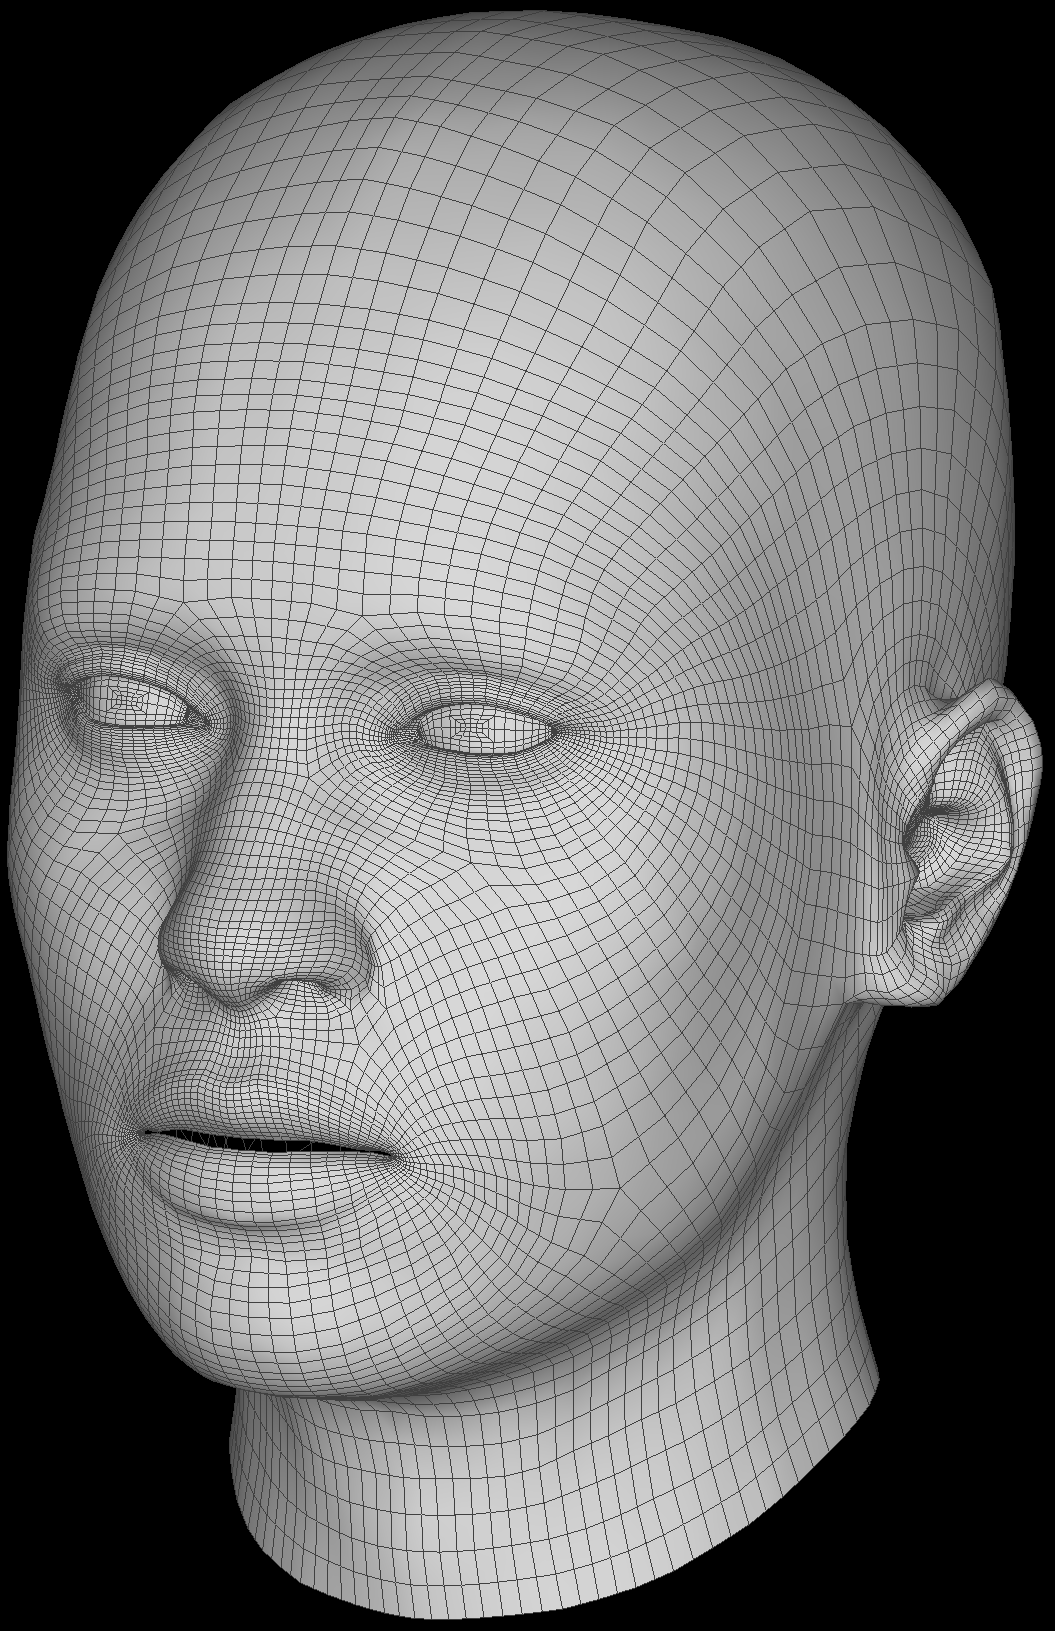 GitHub - patrikhuber/eos: A lightweight 3D Morphable Face Model